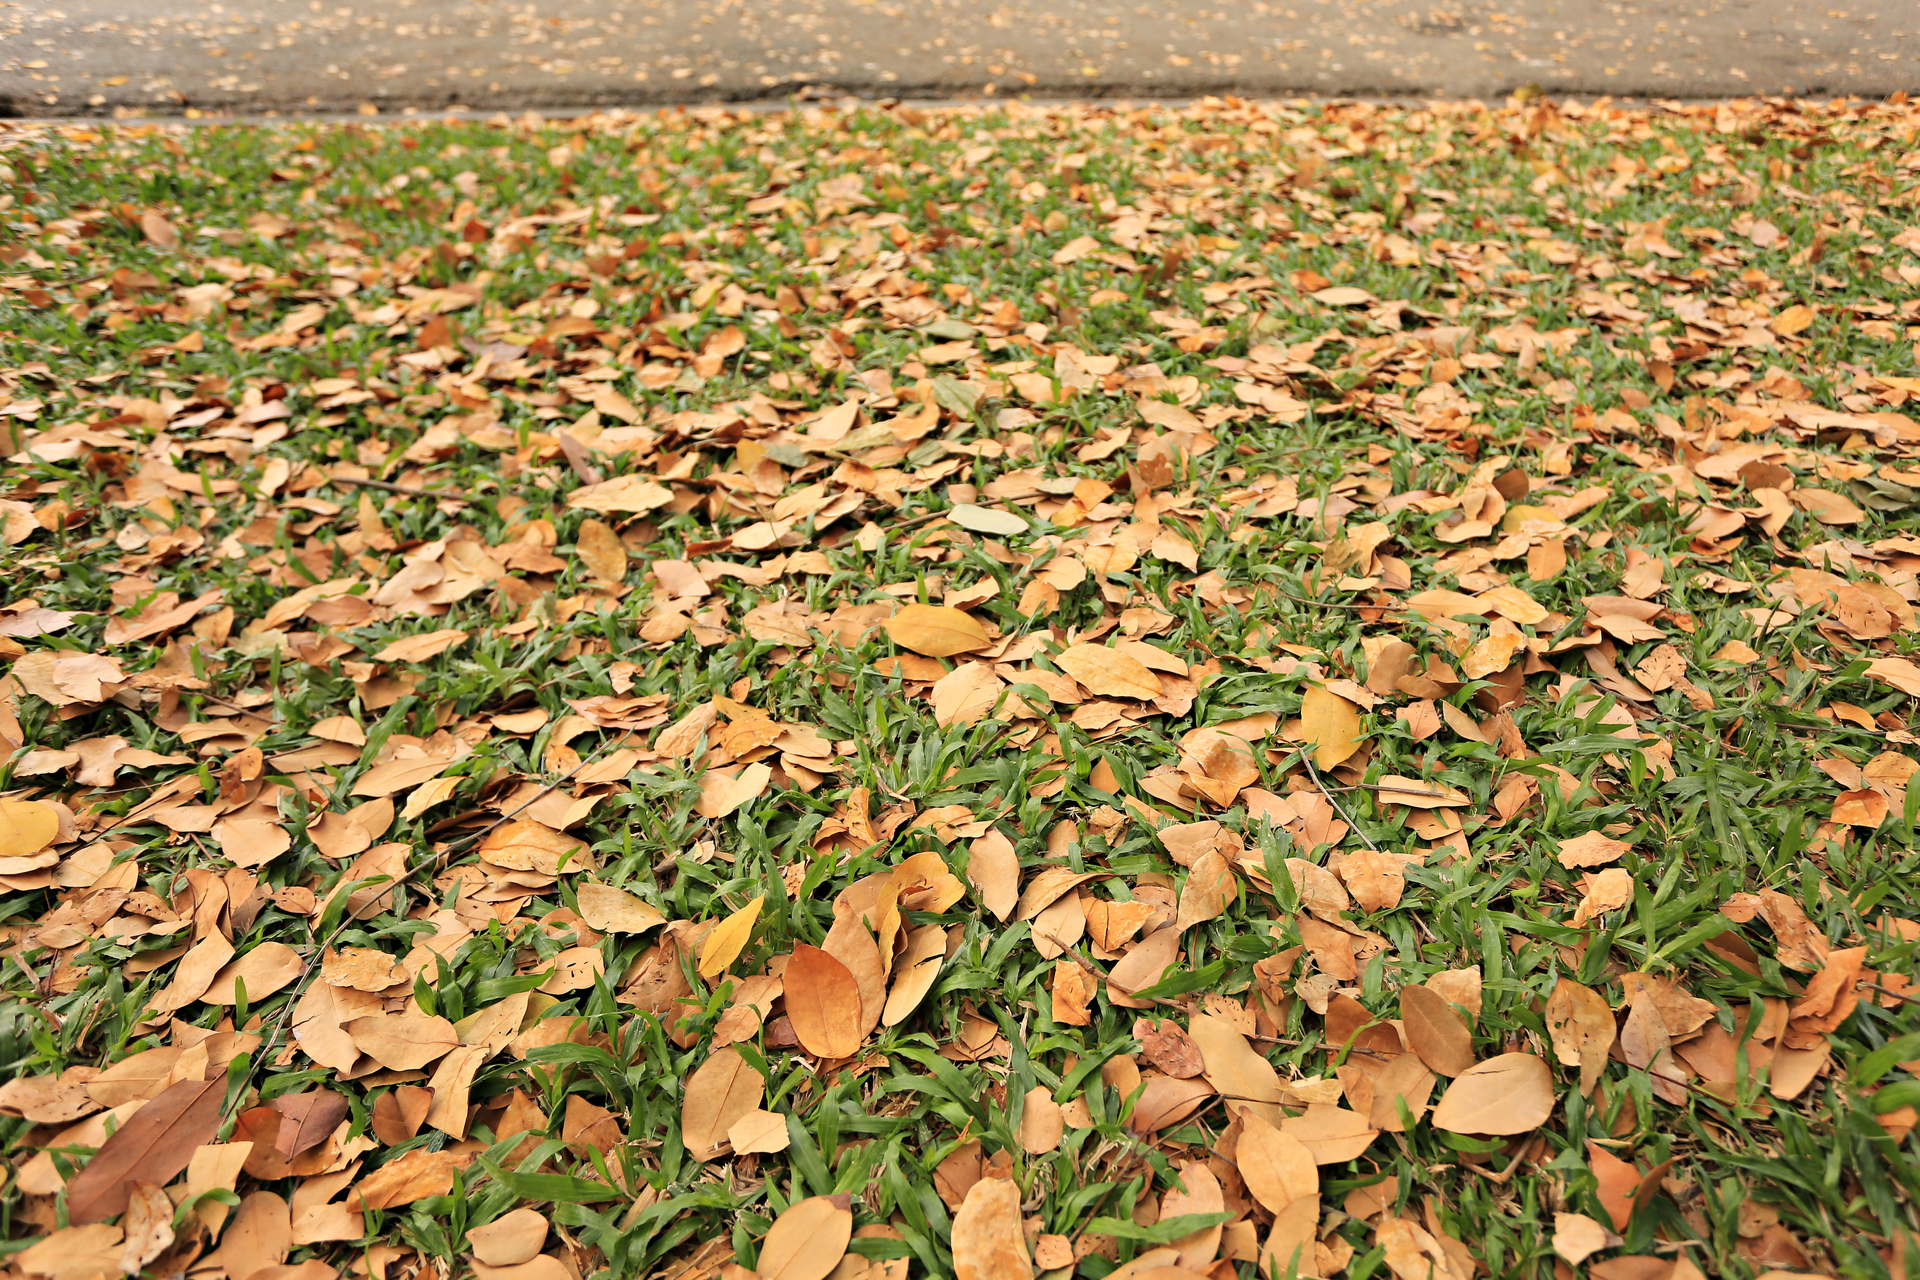 Dry leaves fallen on the lawn in the winter